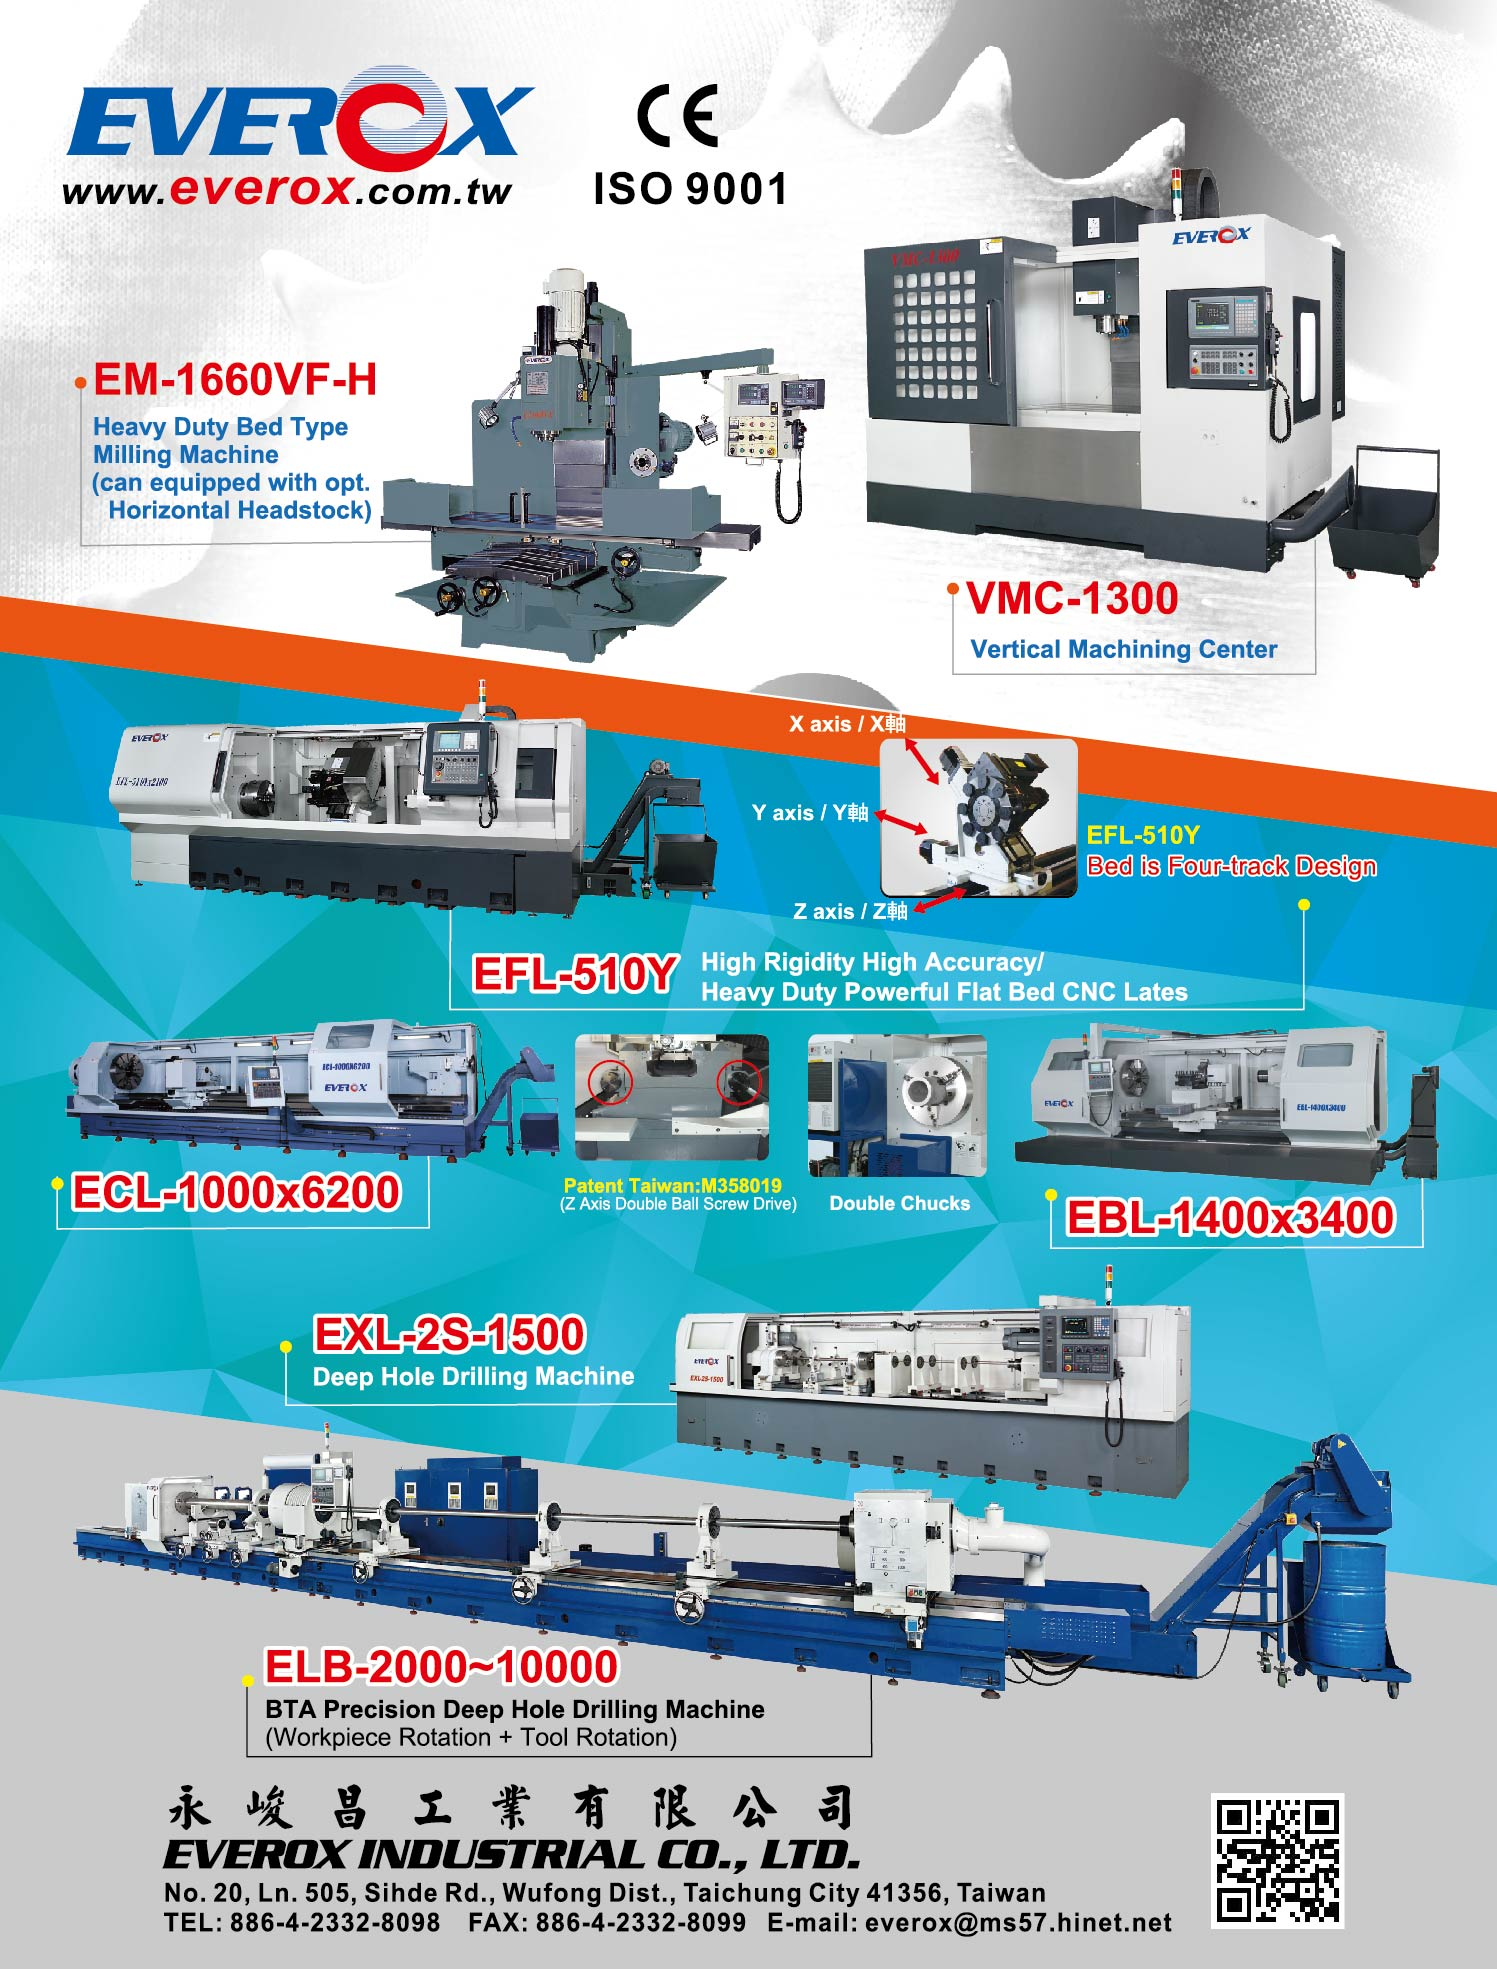 EVEROX INDUSTRIAL CO., LTD.